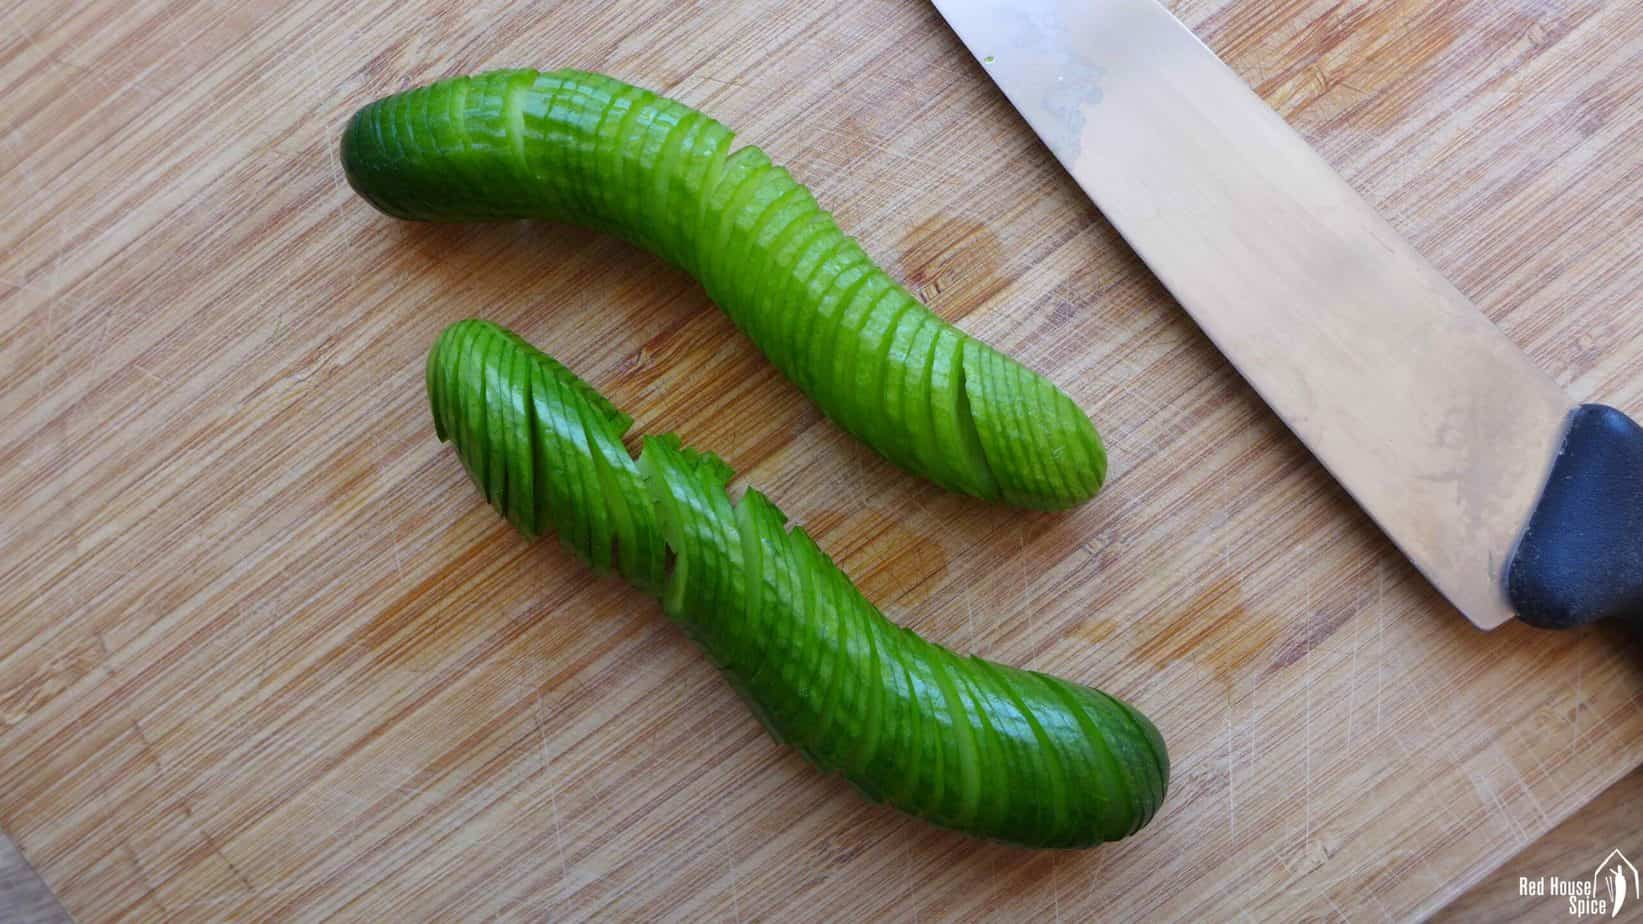 Two cucumbers finely sliced with a knife